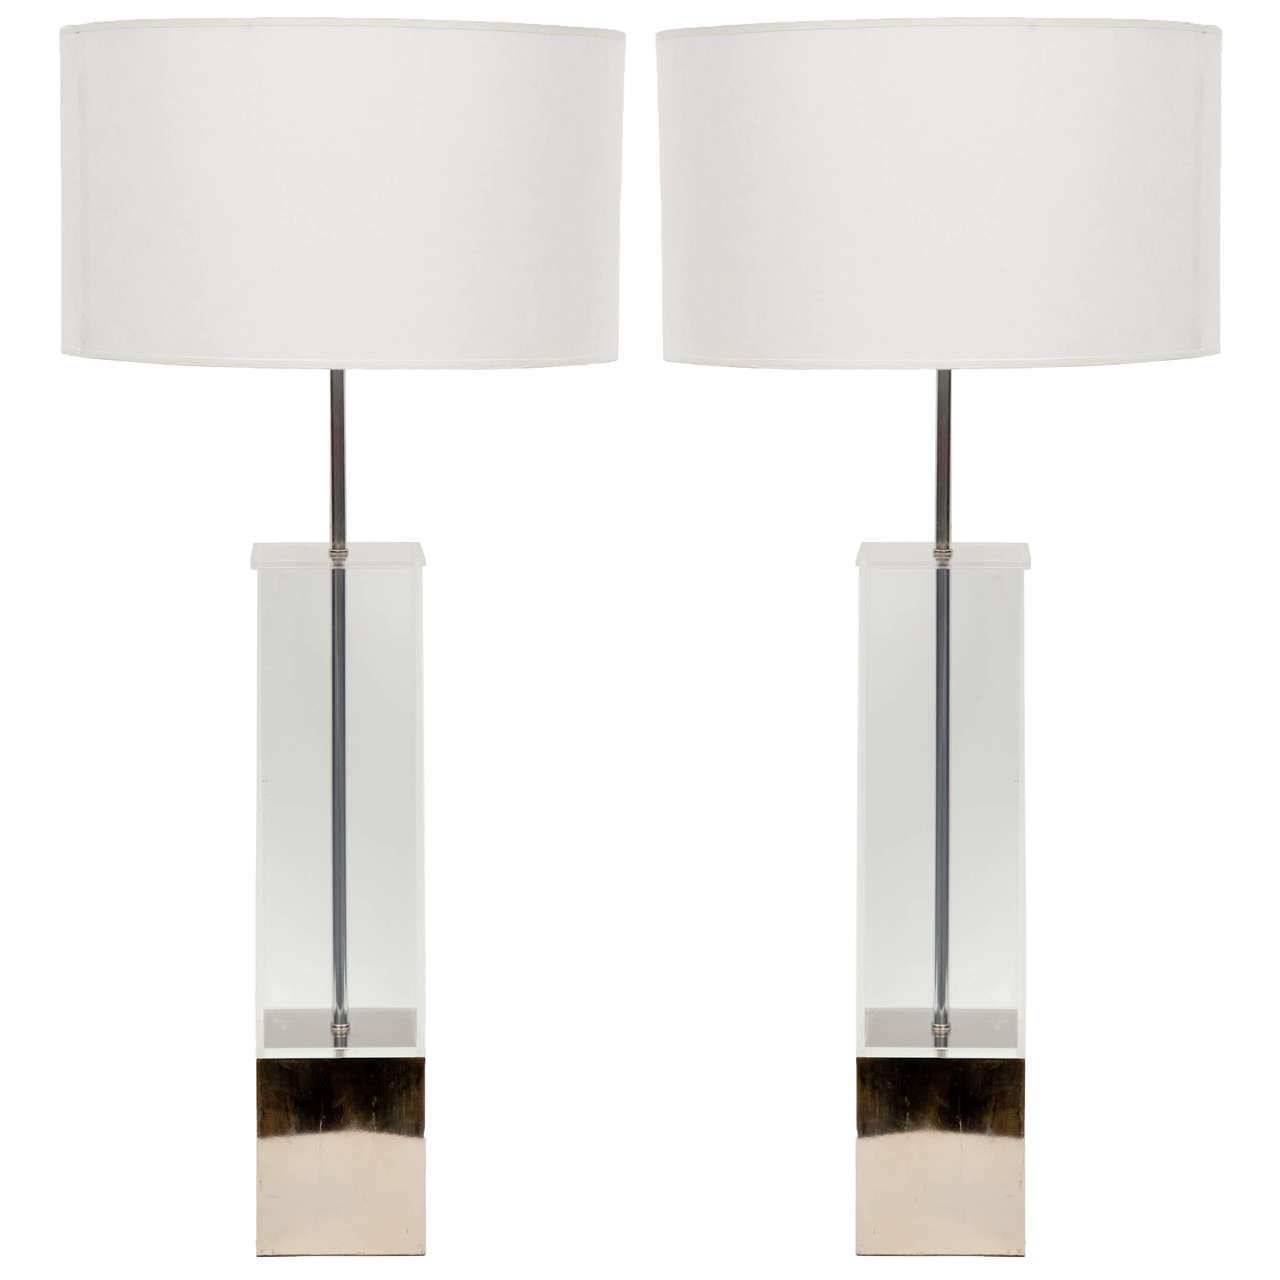 Pair of lucite table lamps with chrome base by laurel at 1stdibs pair of lucite table lamps with chrome base by laurel 1 geotapseo Images